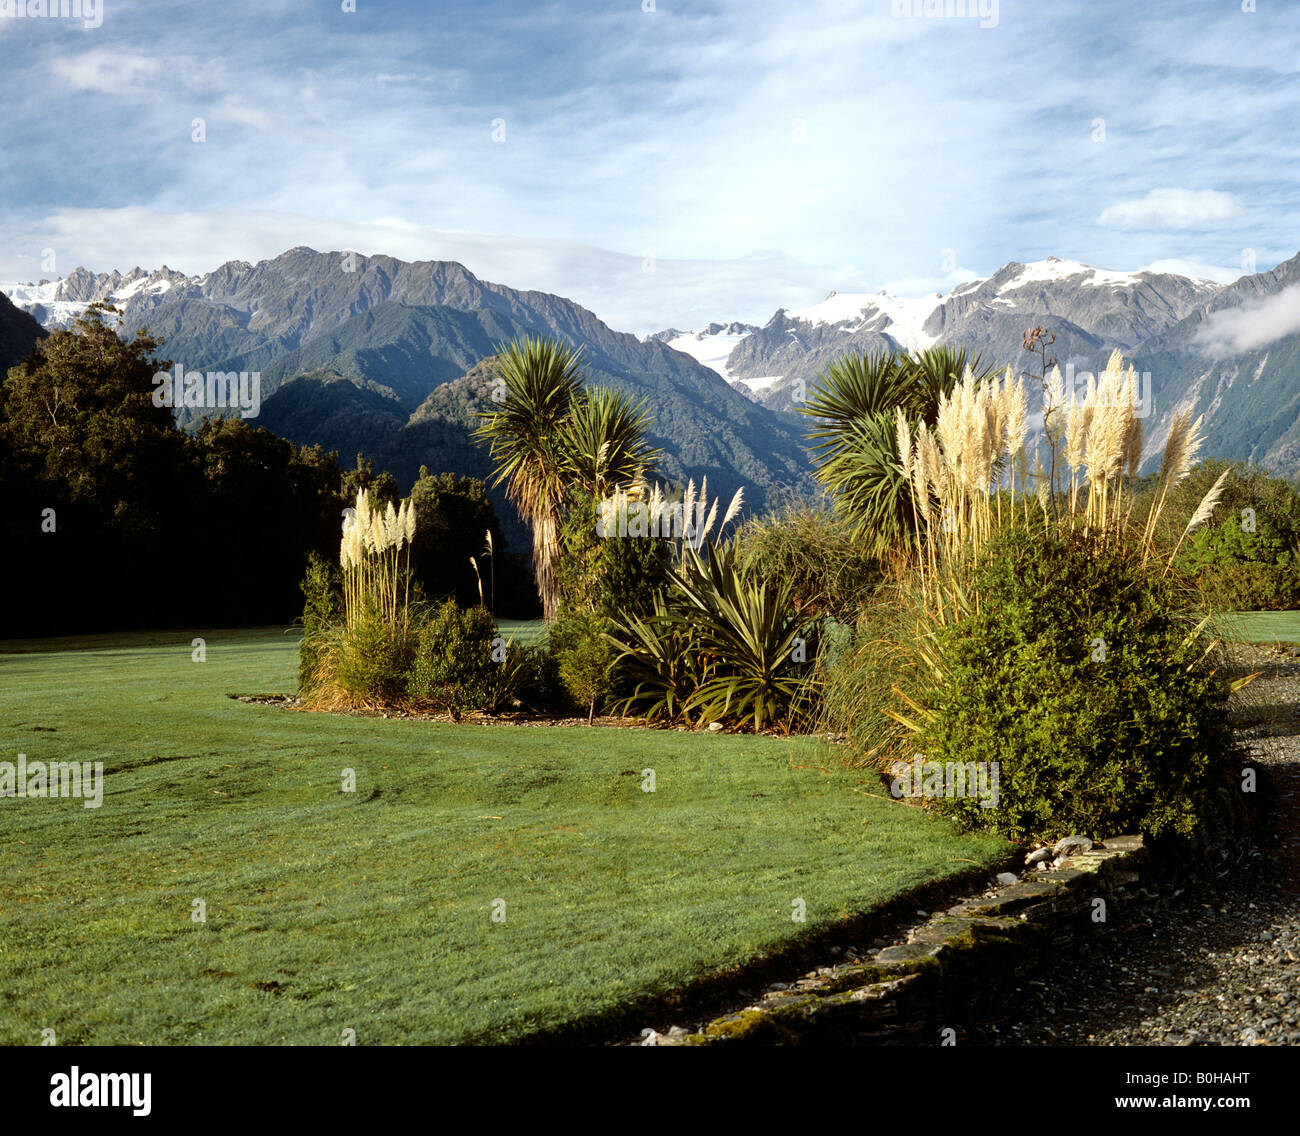 Landscape at the Franz Josef Glacier, South Island, New Zealand Stock Photo